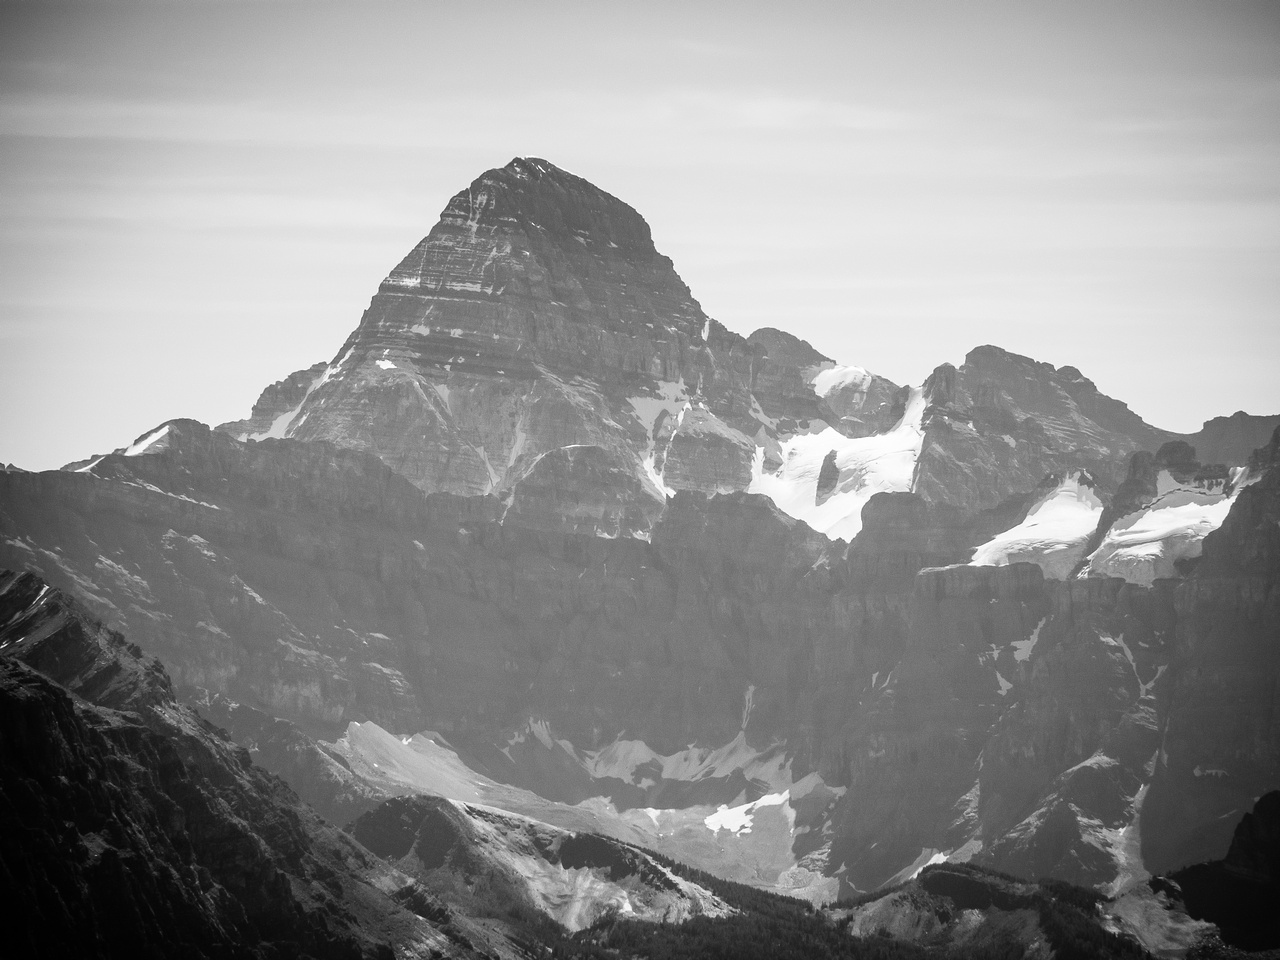 The mighty and impressive Mount Assiniboine.